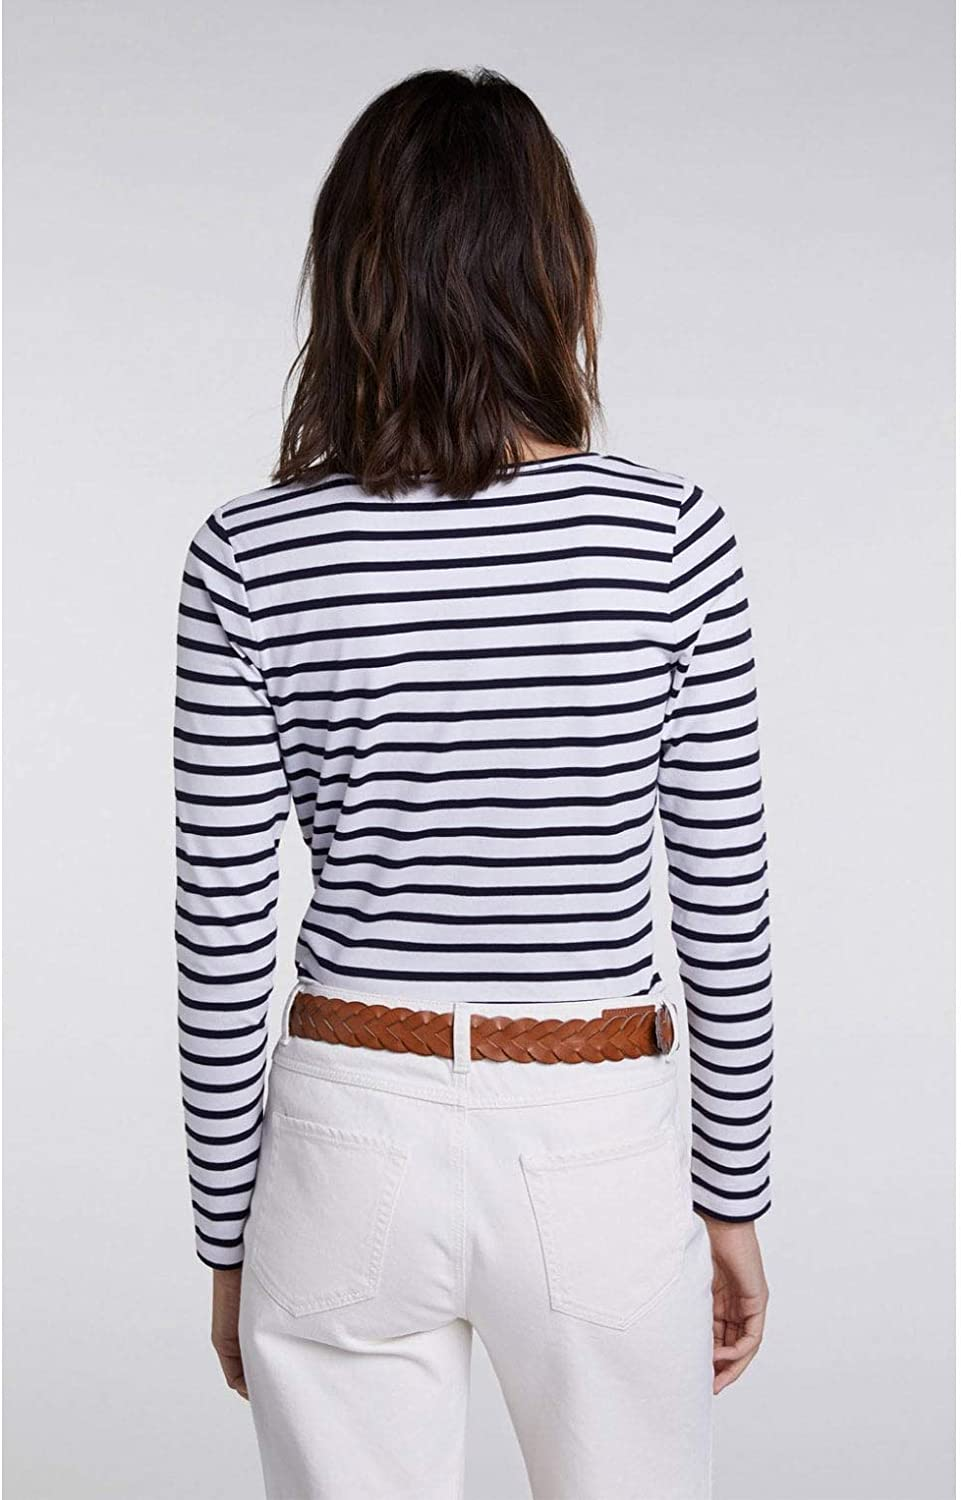 Oui Navy & White Striped Top White and Blue